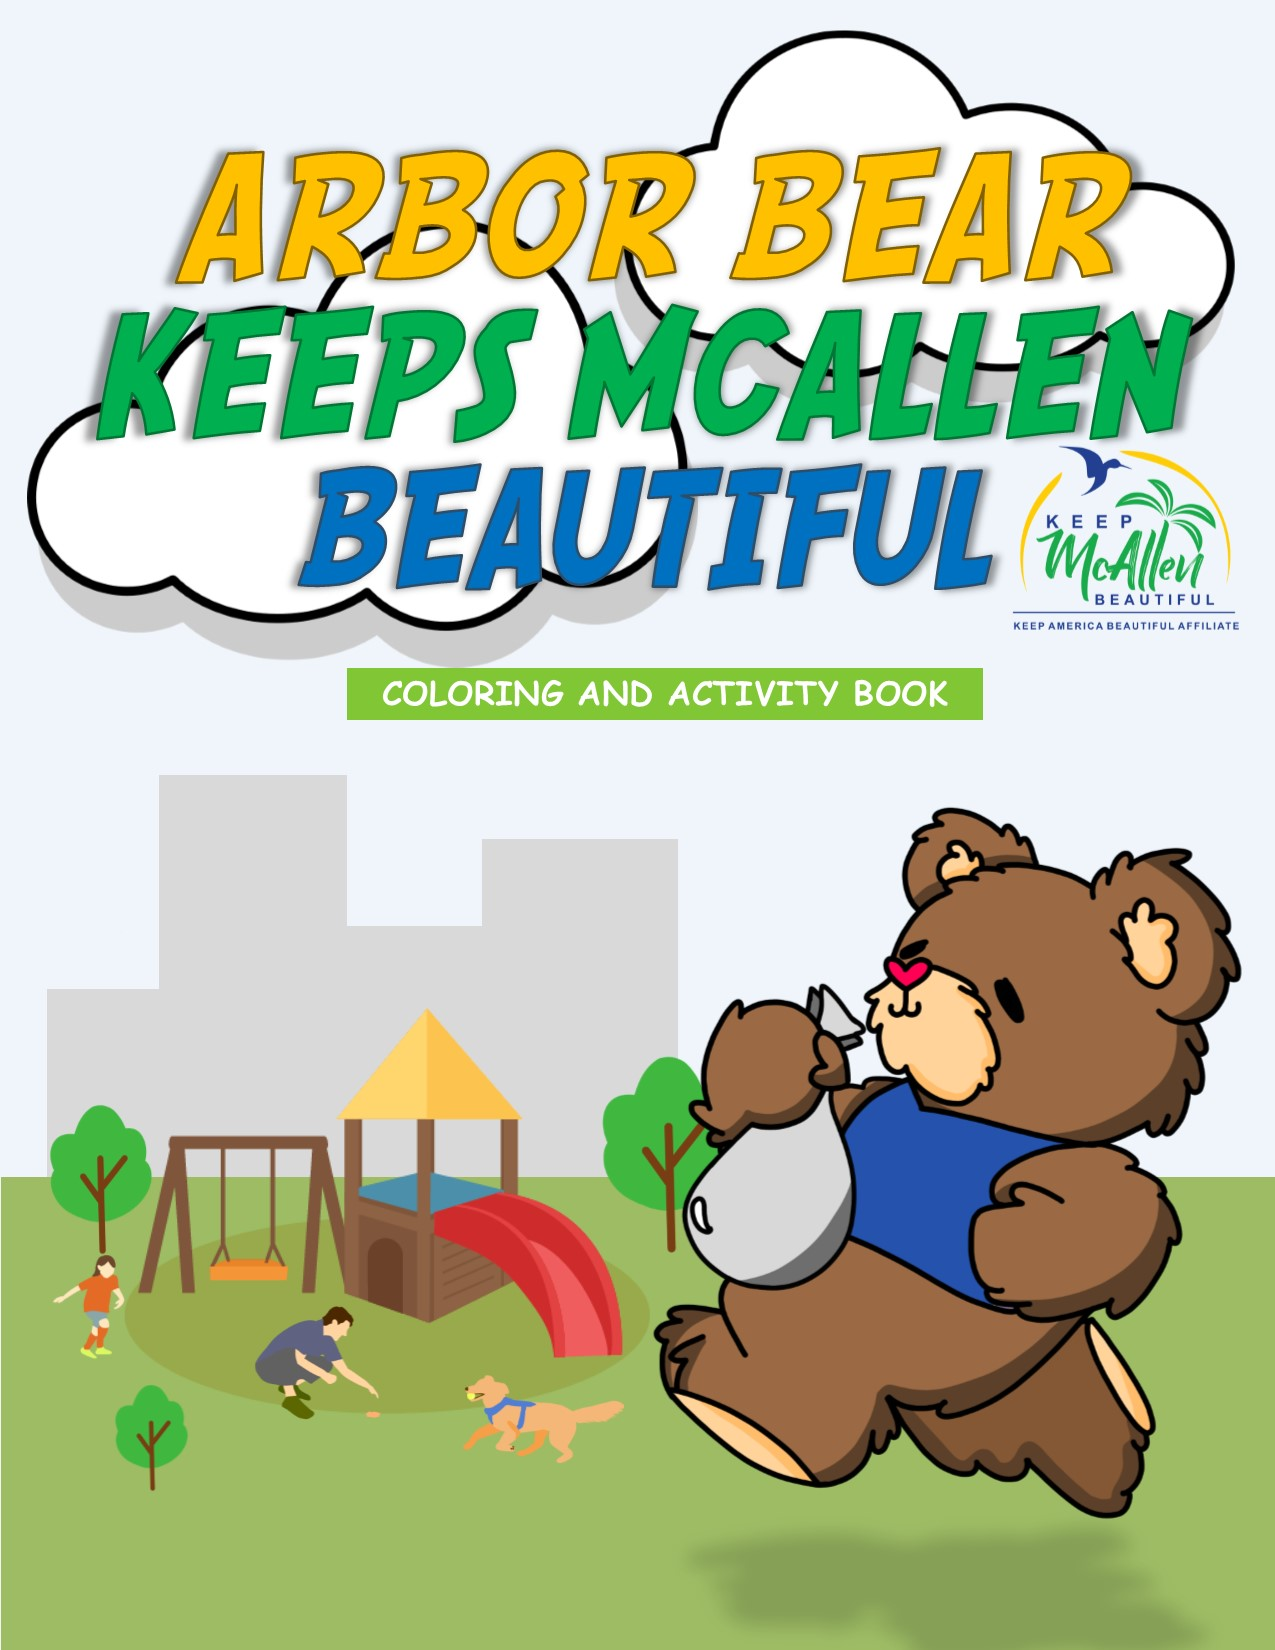 Arbor Bear Keeps McAllen Beautiful Original